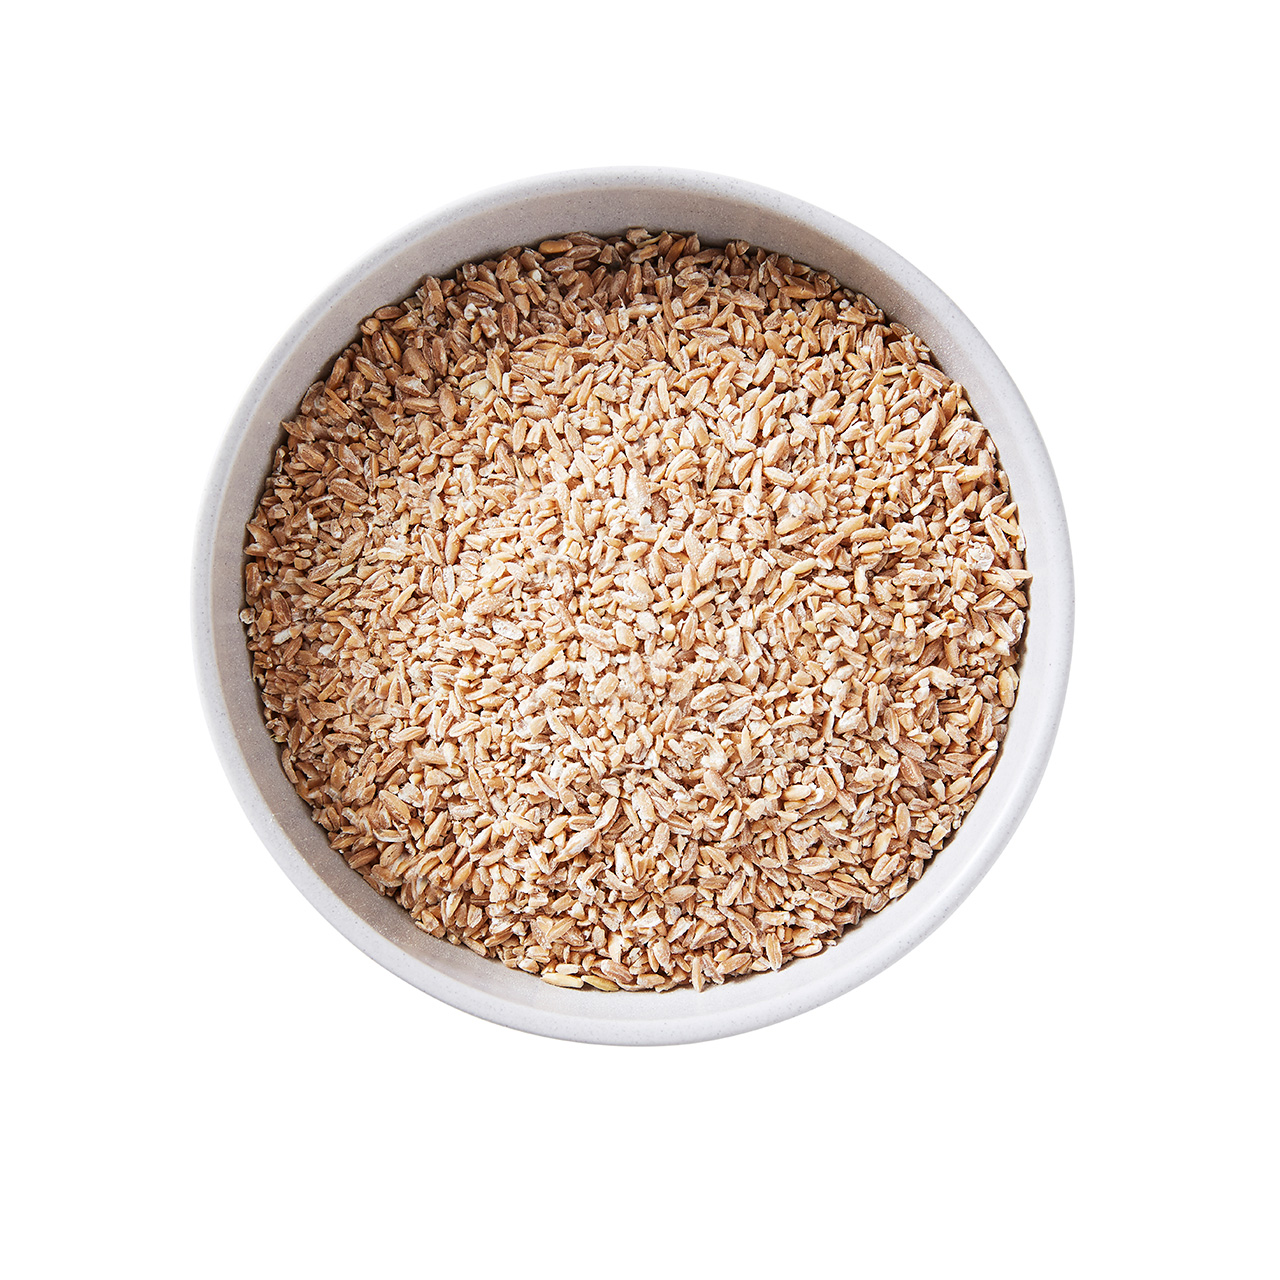 Biodynamic Cracked Farro